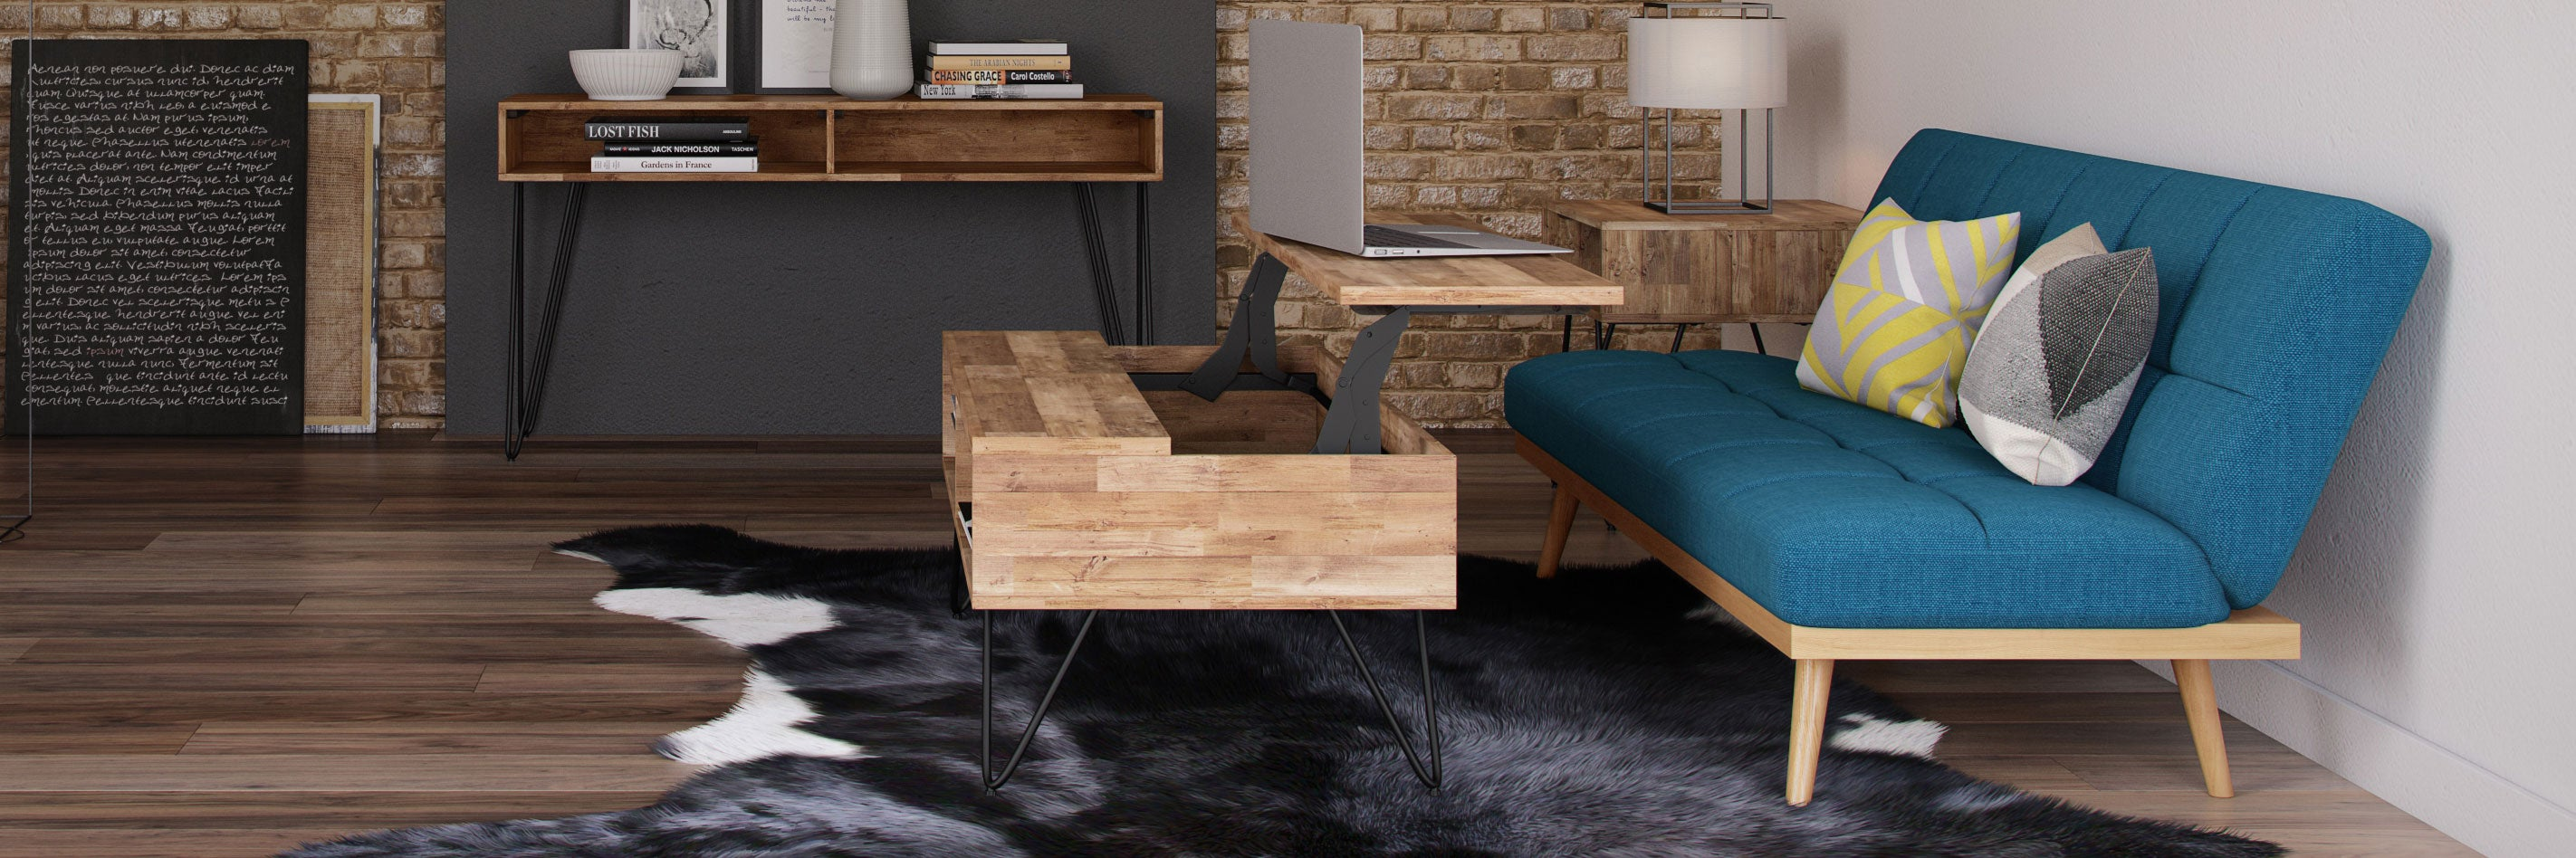 Hunter Lift-Up Coffee Table and Spencer Sofa Bed